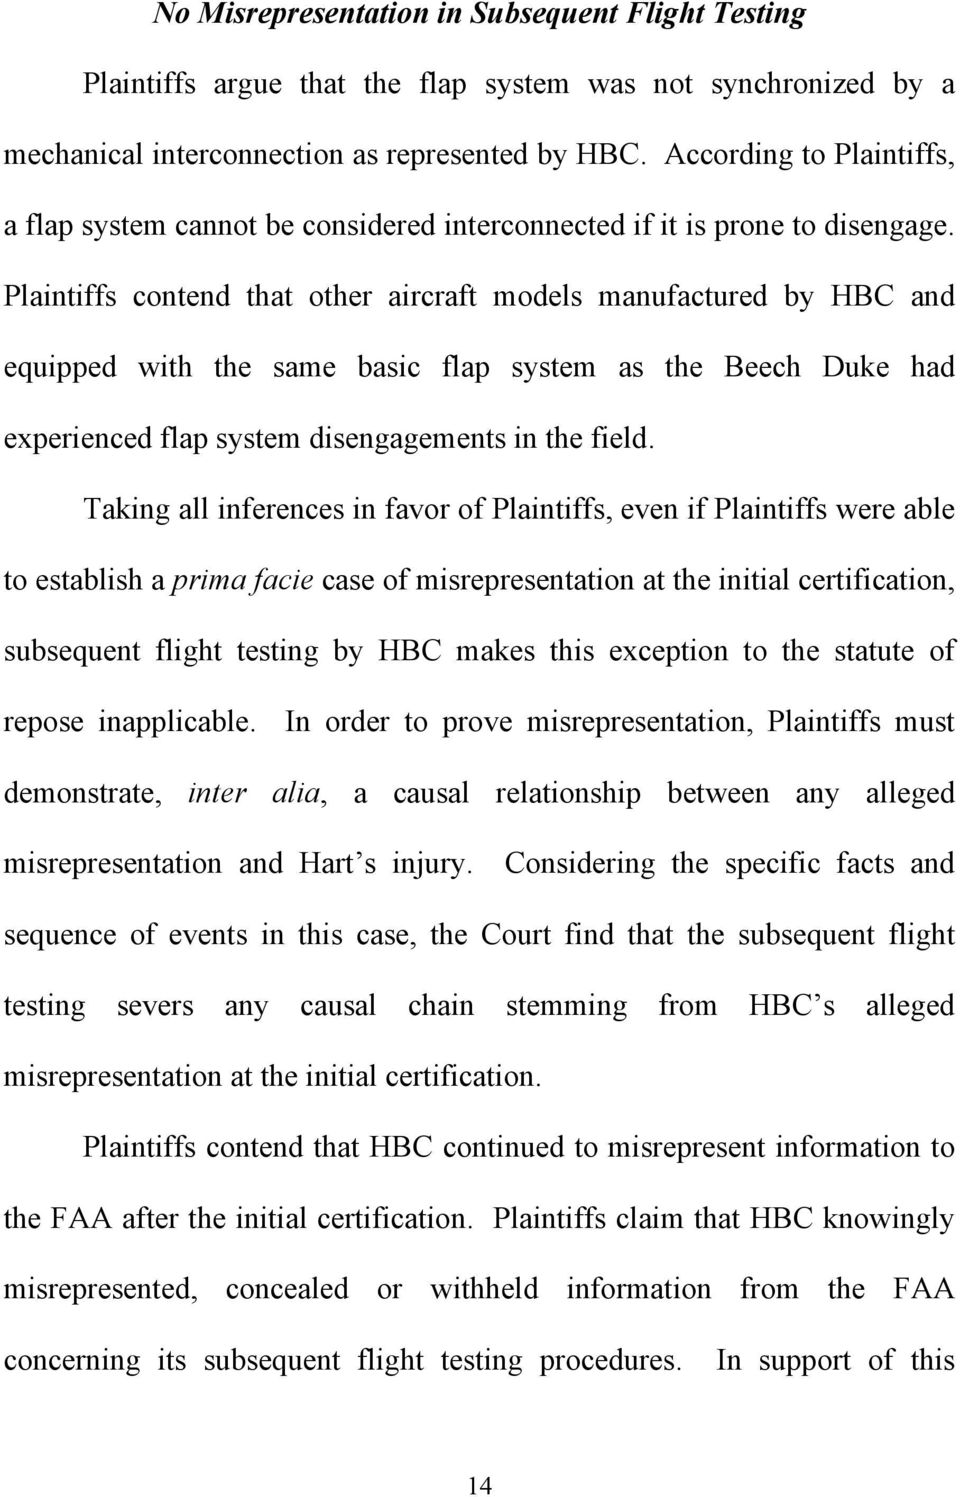 Plaintiffs contend that other aircraft models manufactured by HBC and equipped with the same basic flap system as the Beech Duke had experienced flap system disengagements in the field.